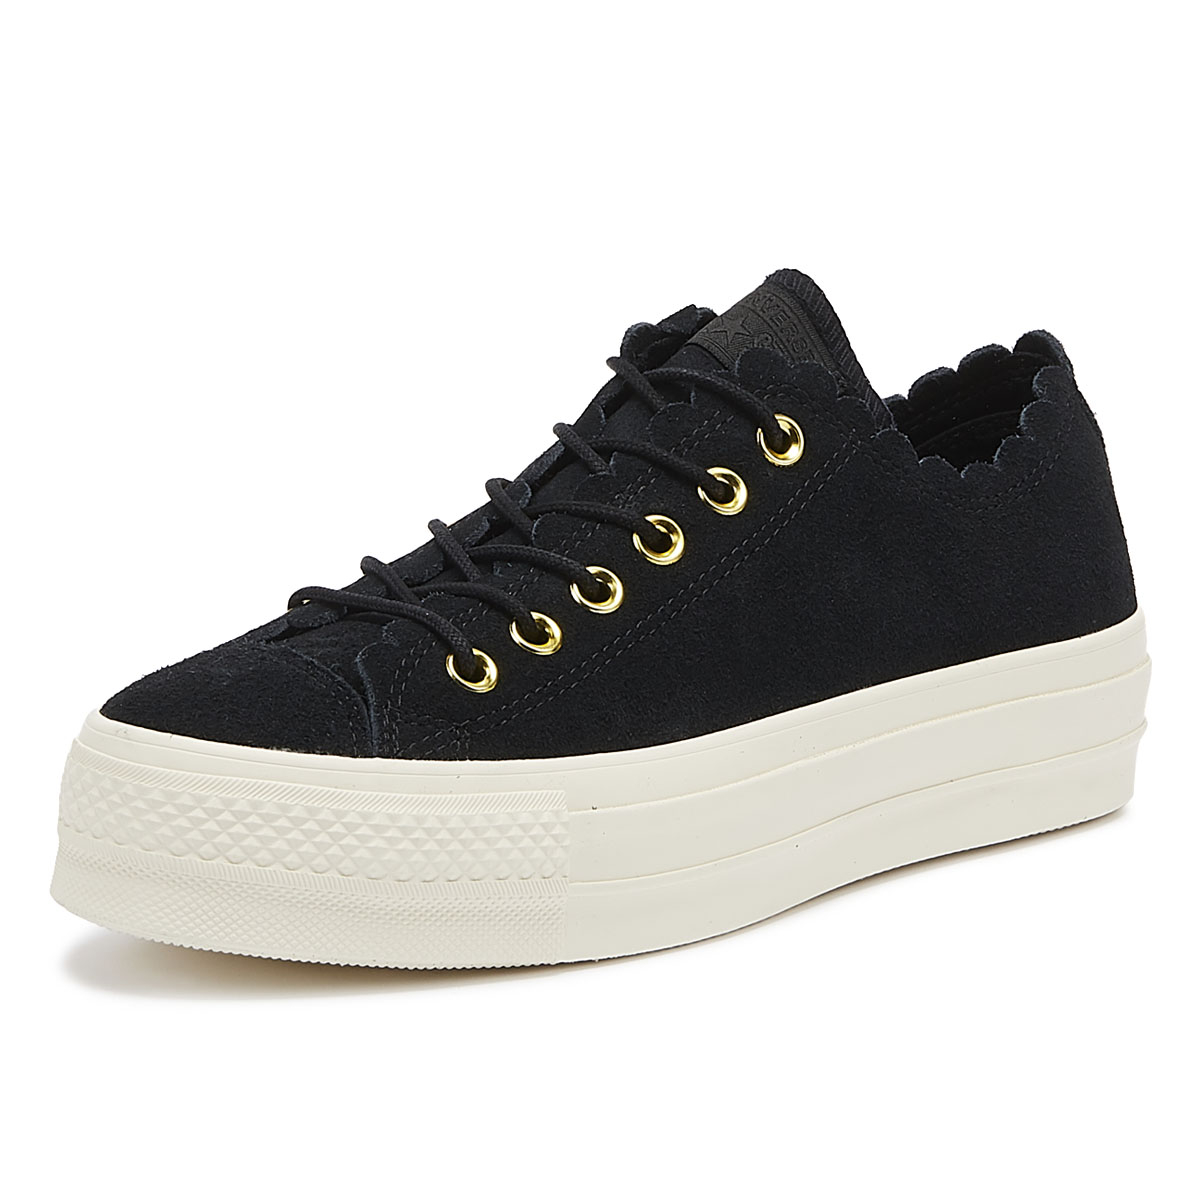 8d4bd6795938df Details about Converse Chuck Taylor All Star Lift Frilly Thrills Womens  Black Trainers Shoes